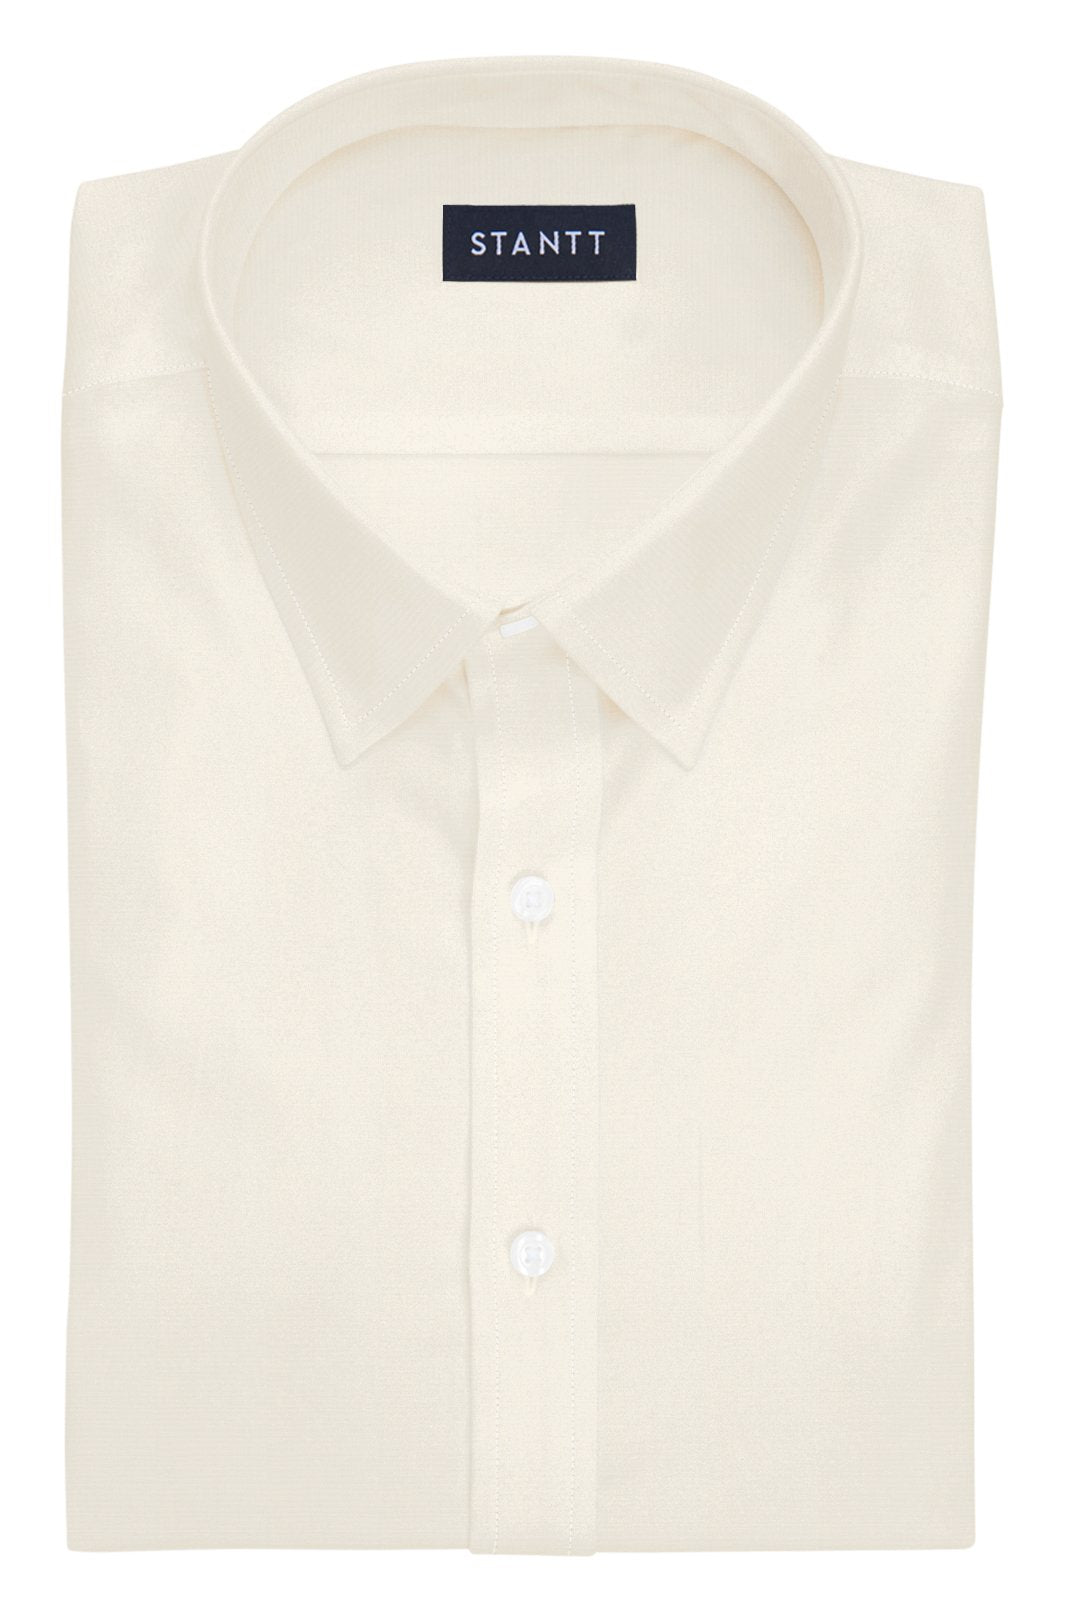 Ecru Poplin: Semi-Spread Collar, French Cuff